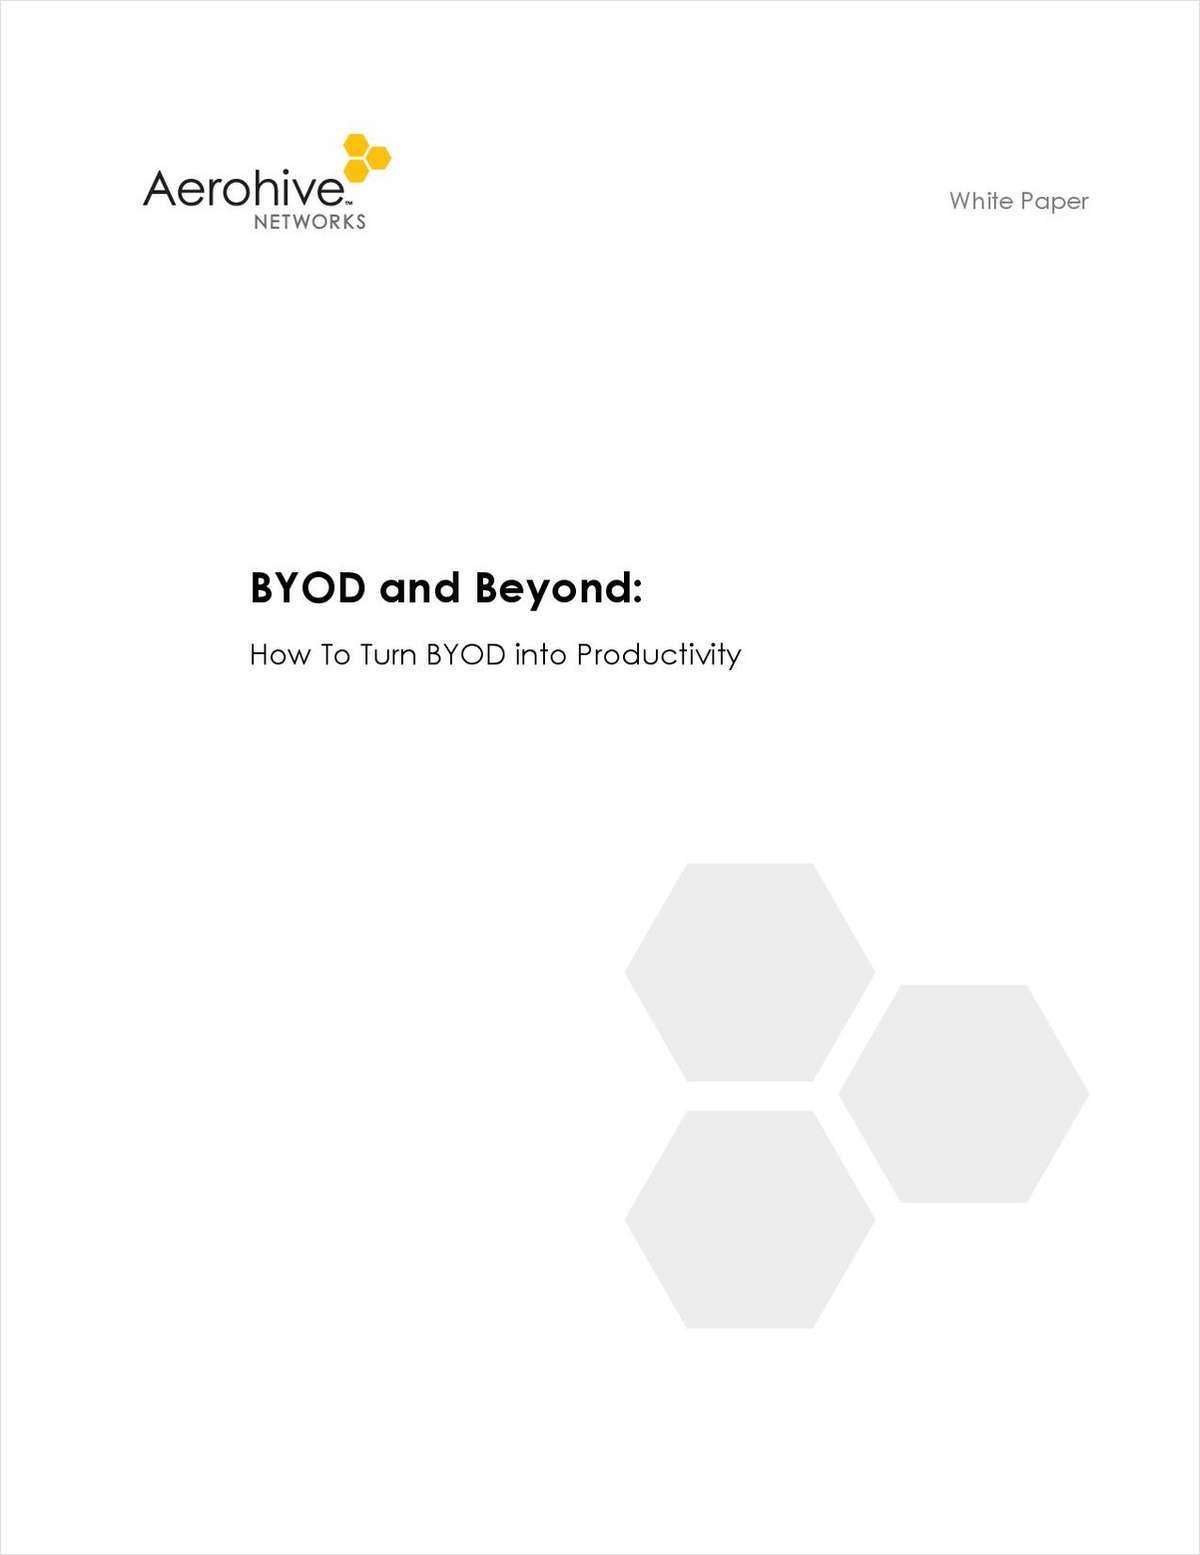 BYOD and Beyond: How To Turn BYOD into Productivity